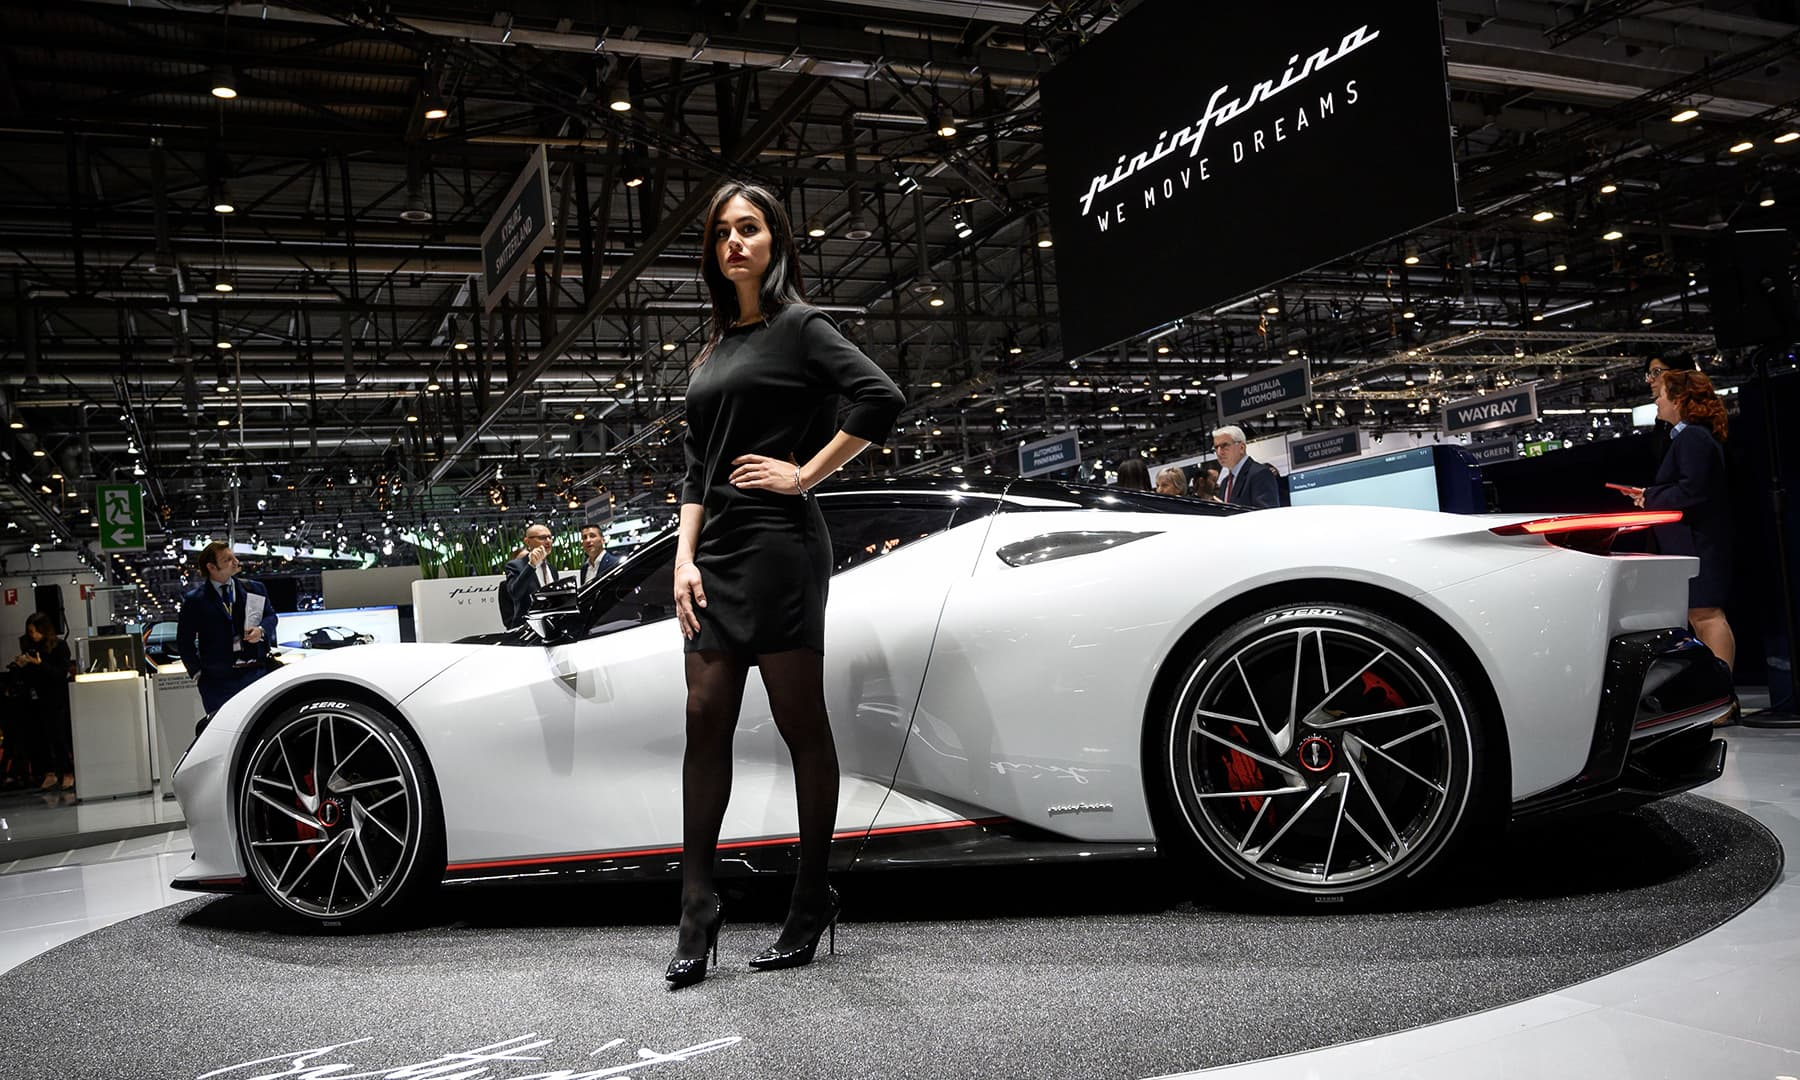 The new Pininfarina Battista model car is seen at the booth of the Italian carmaker on March 5 during a press day ahead of the Geneva International Motor Show. — AFP